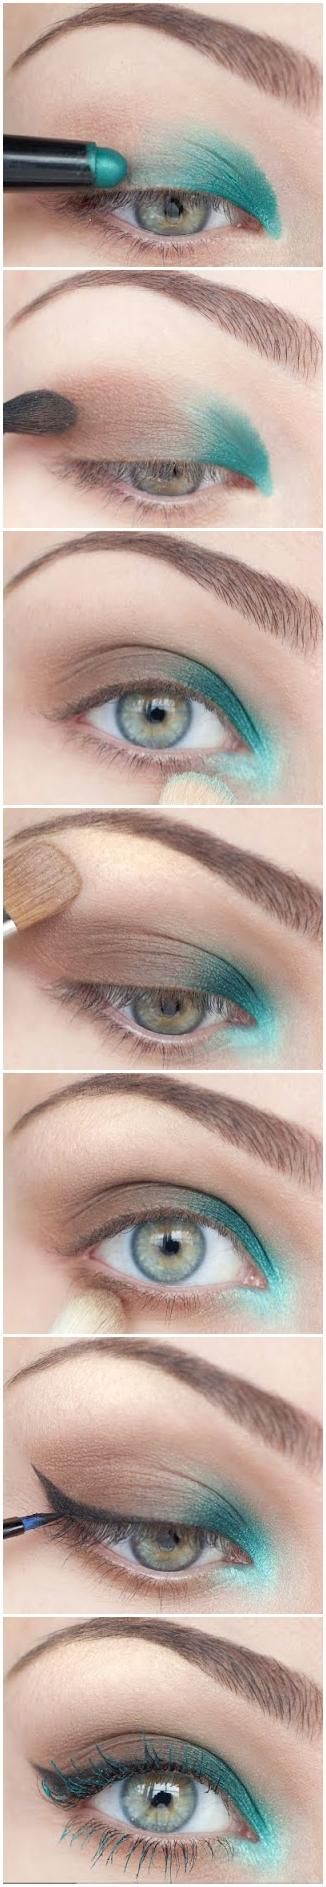 learn makeup step by step